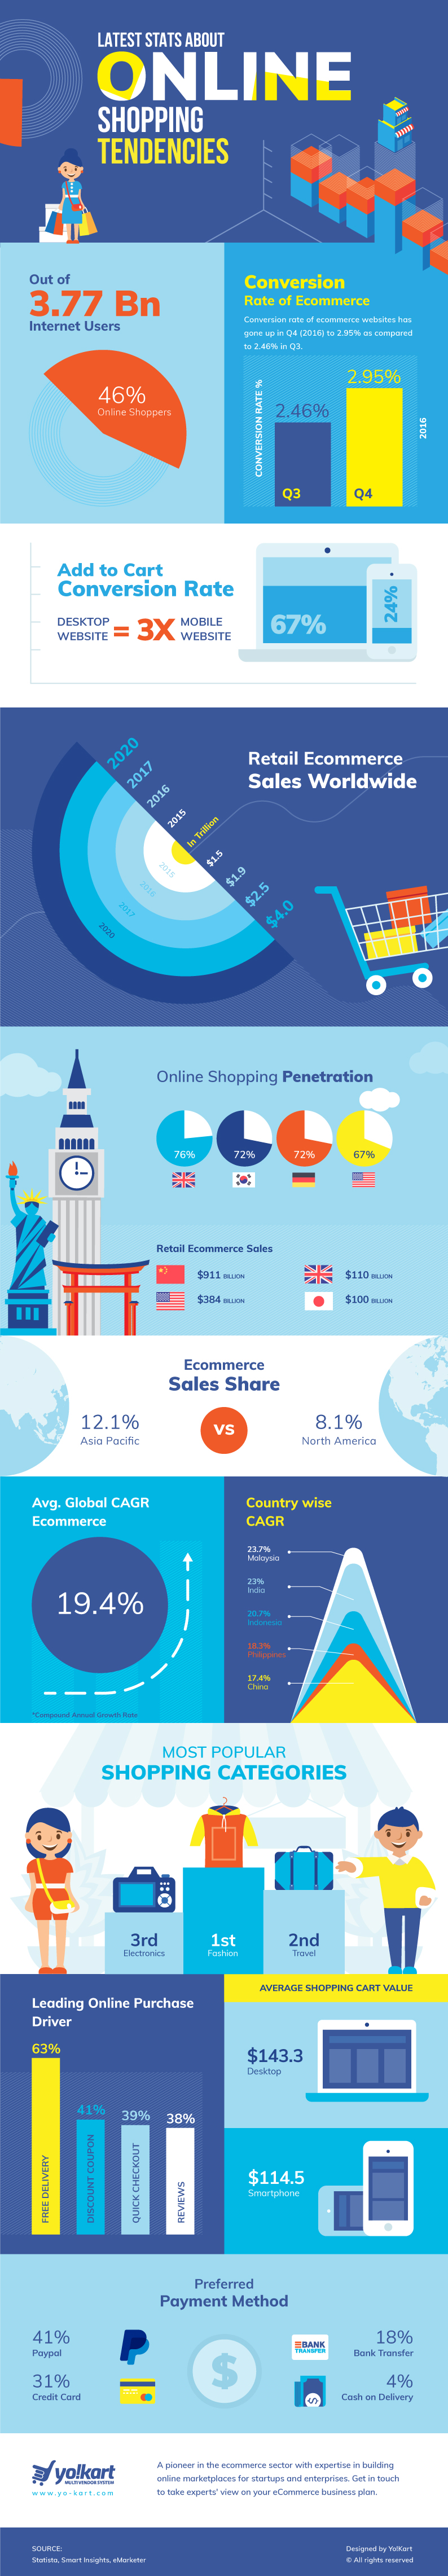 Online Shopping Tendencies 2017